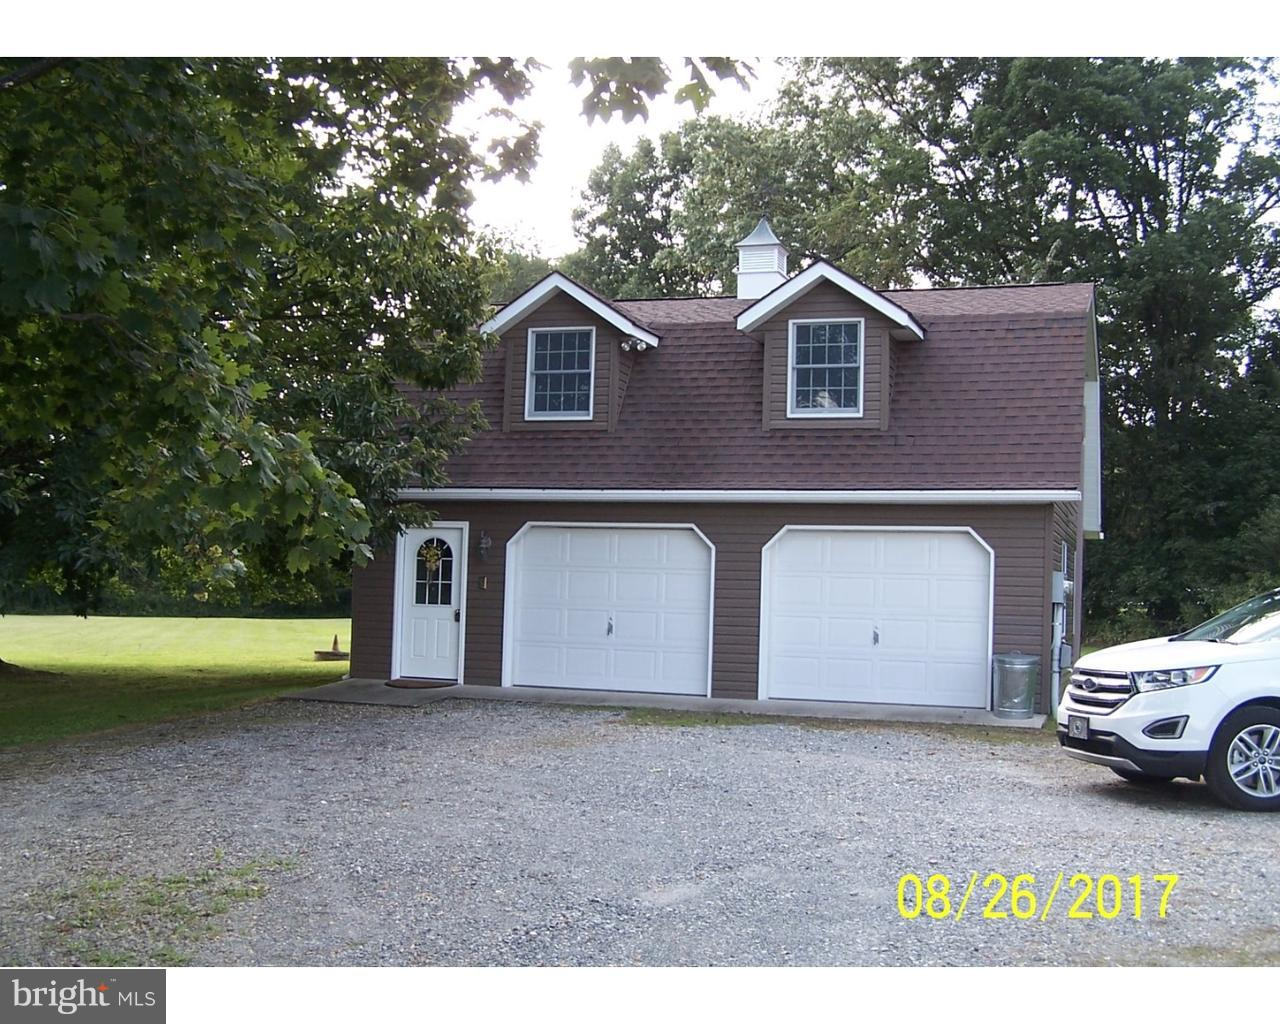 121 BERRY ROAD, ANDREAS, PA 18211